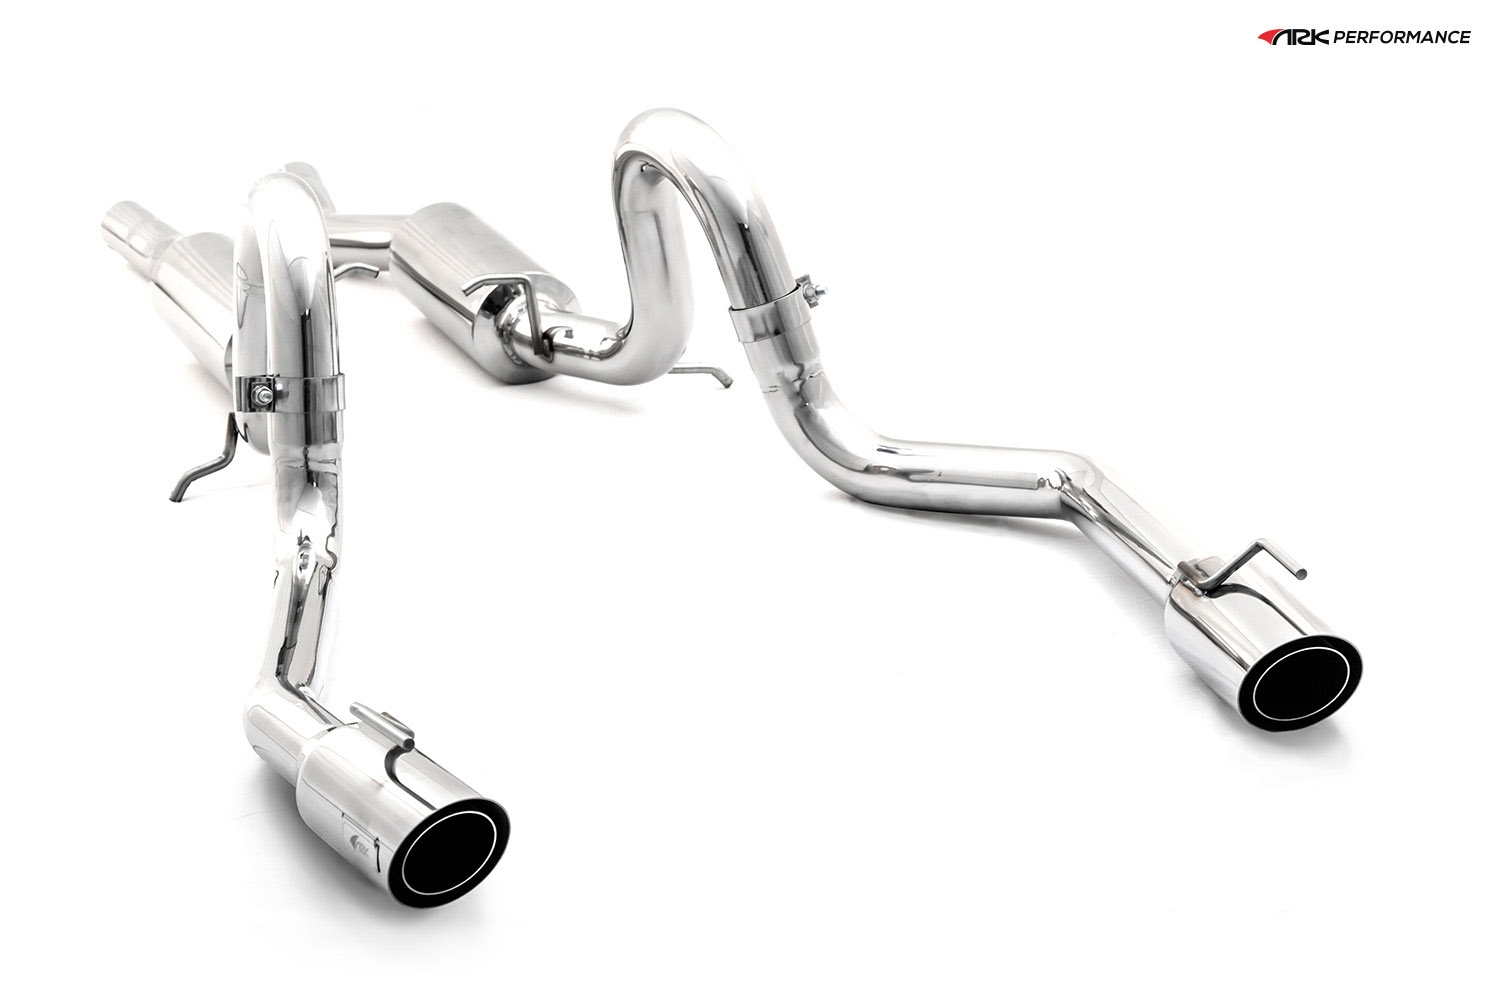 Ark Performance Stainless Steel DT-S Cat-Back Exhaust System 2.5in Pipe w/ 4.0 Polished Single Tip, Dual Exit - Ford Mustang 99-04 4.6L V8 4TH GEN